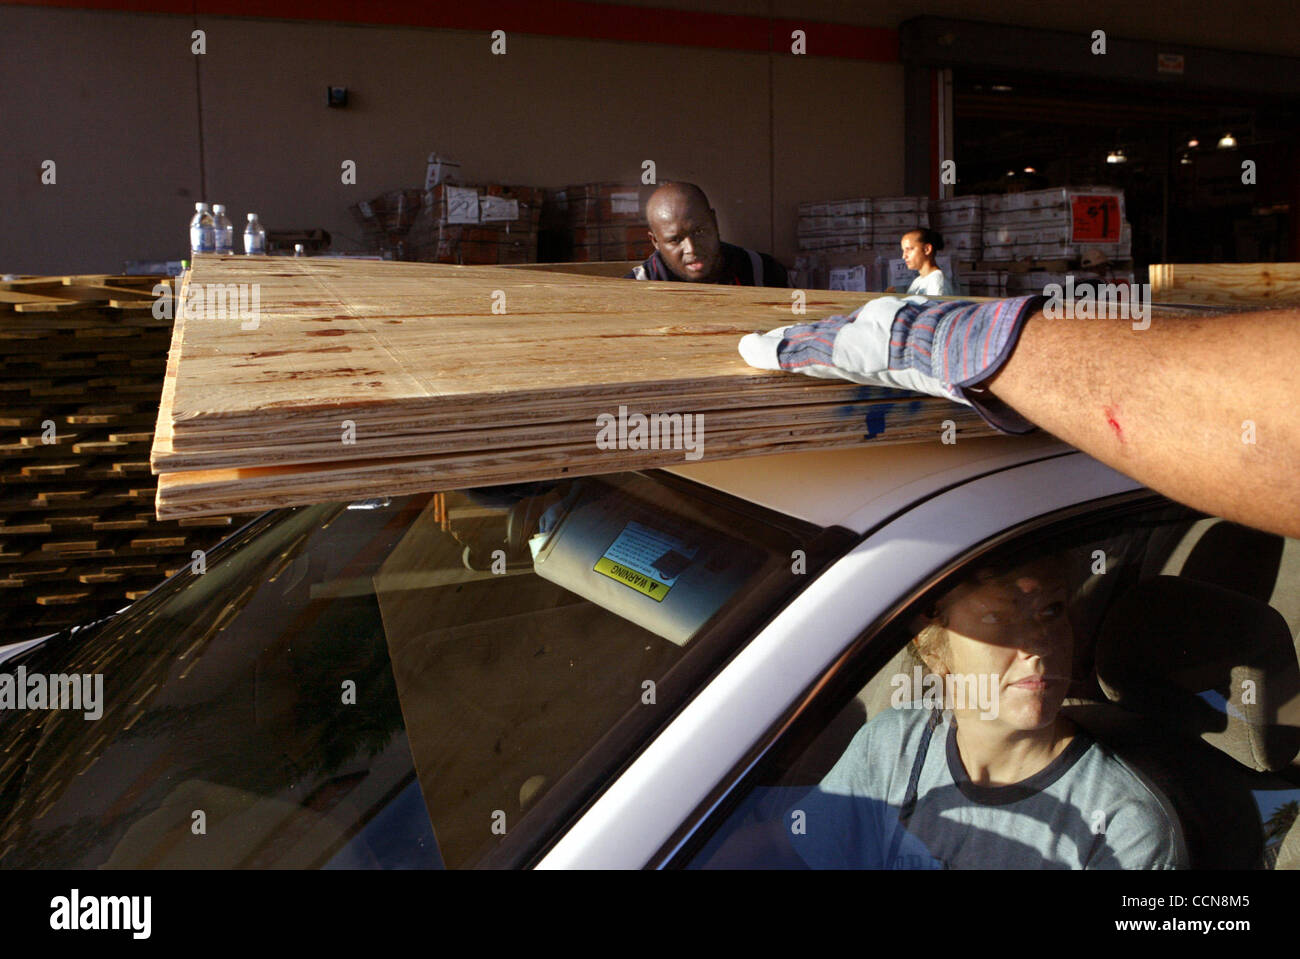 090104 Met West Palm Beach Plywood Is Loaded On Top Of The Car For